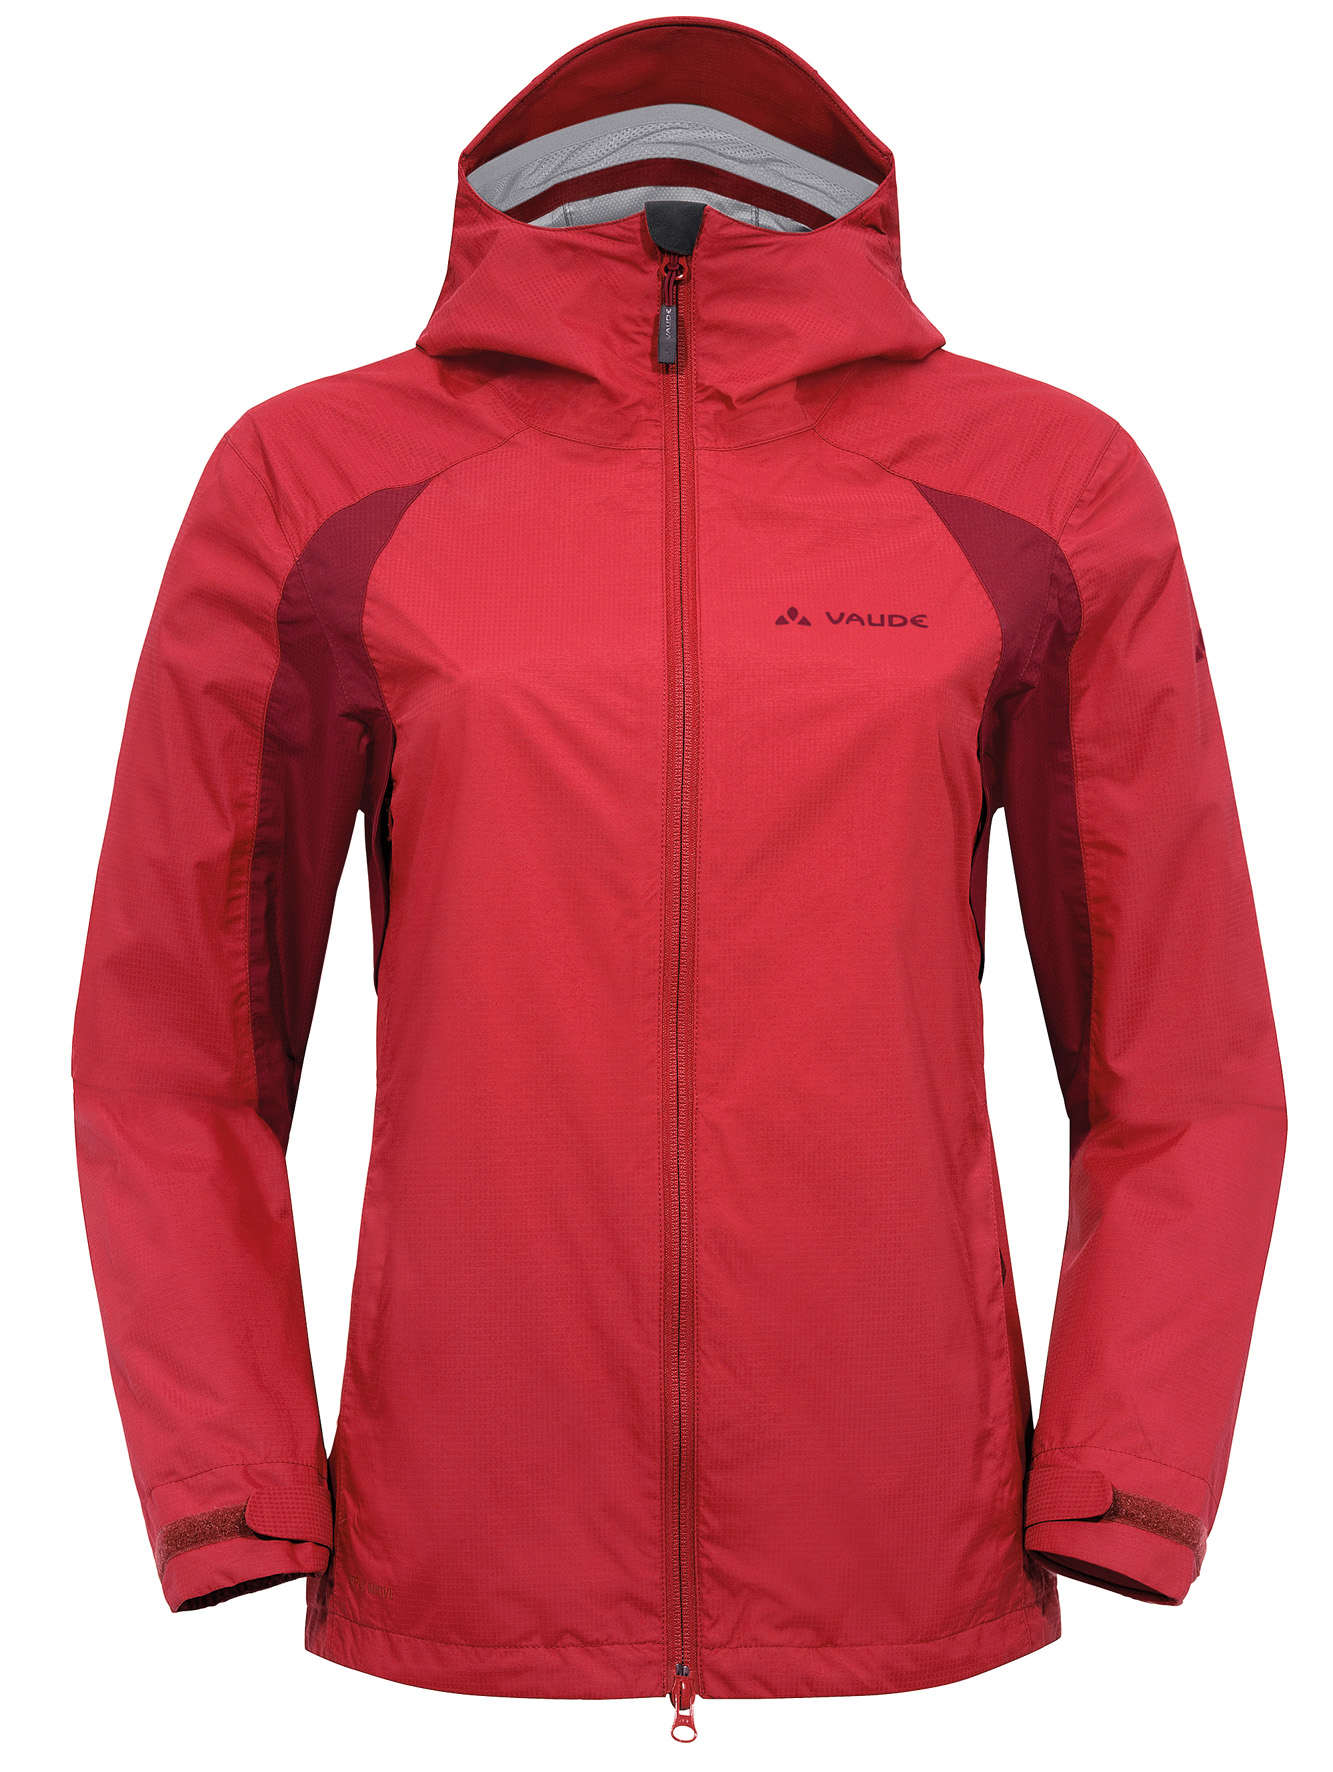 VAUDE Women´s Yaras Jacket red Größe 36 - schneider-sports